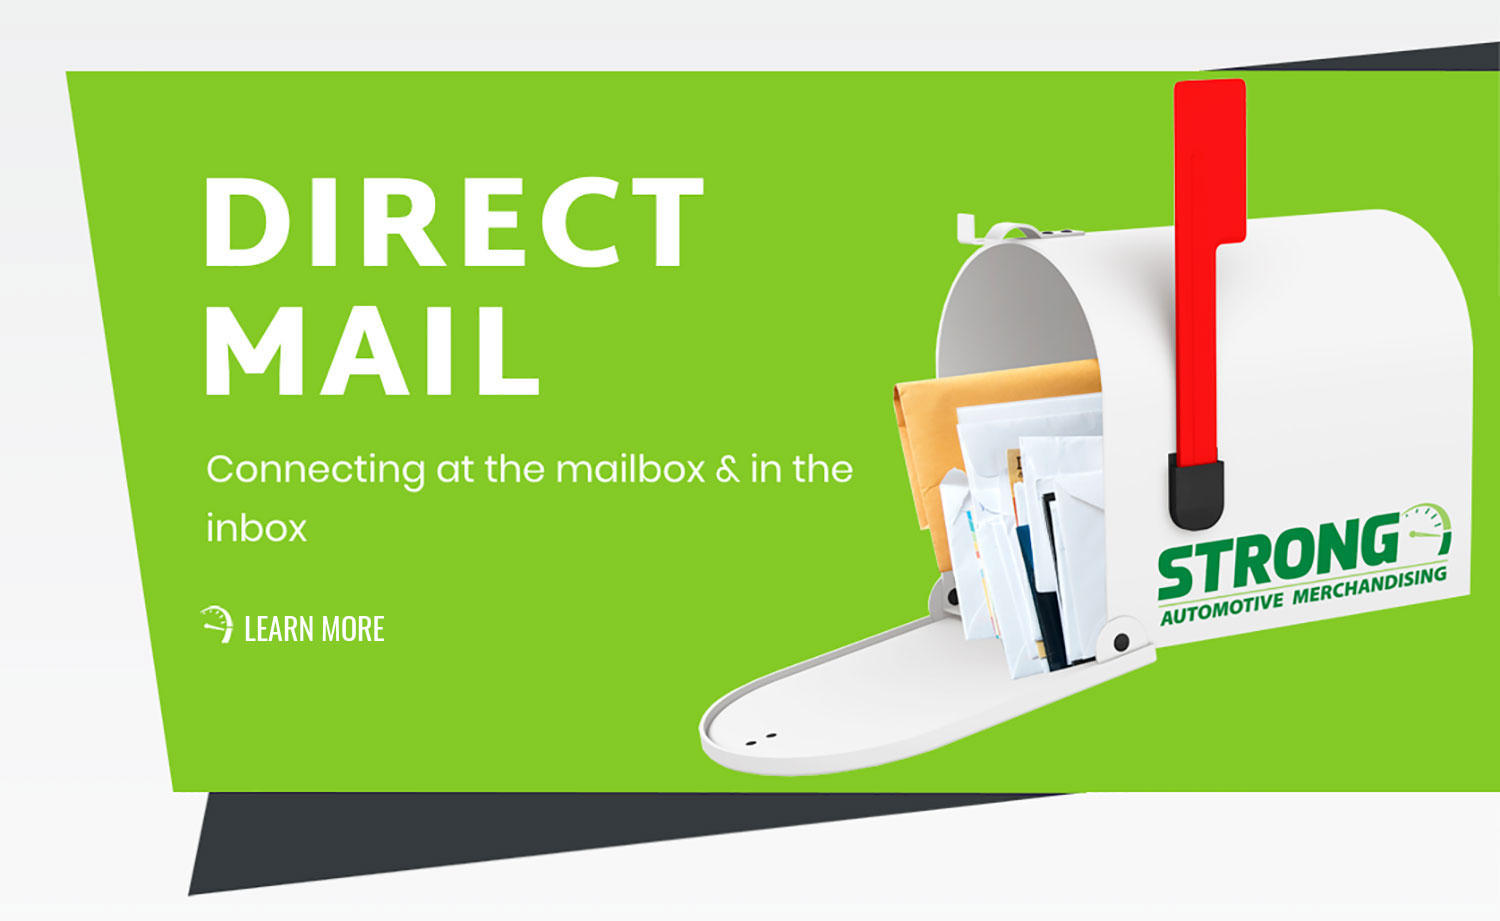 Strong Automotive Merchandising Services - Direct Mail